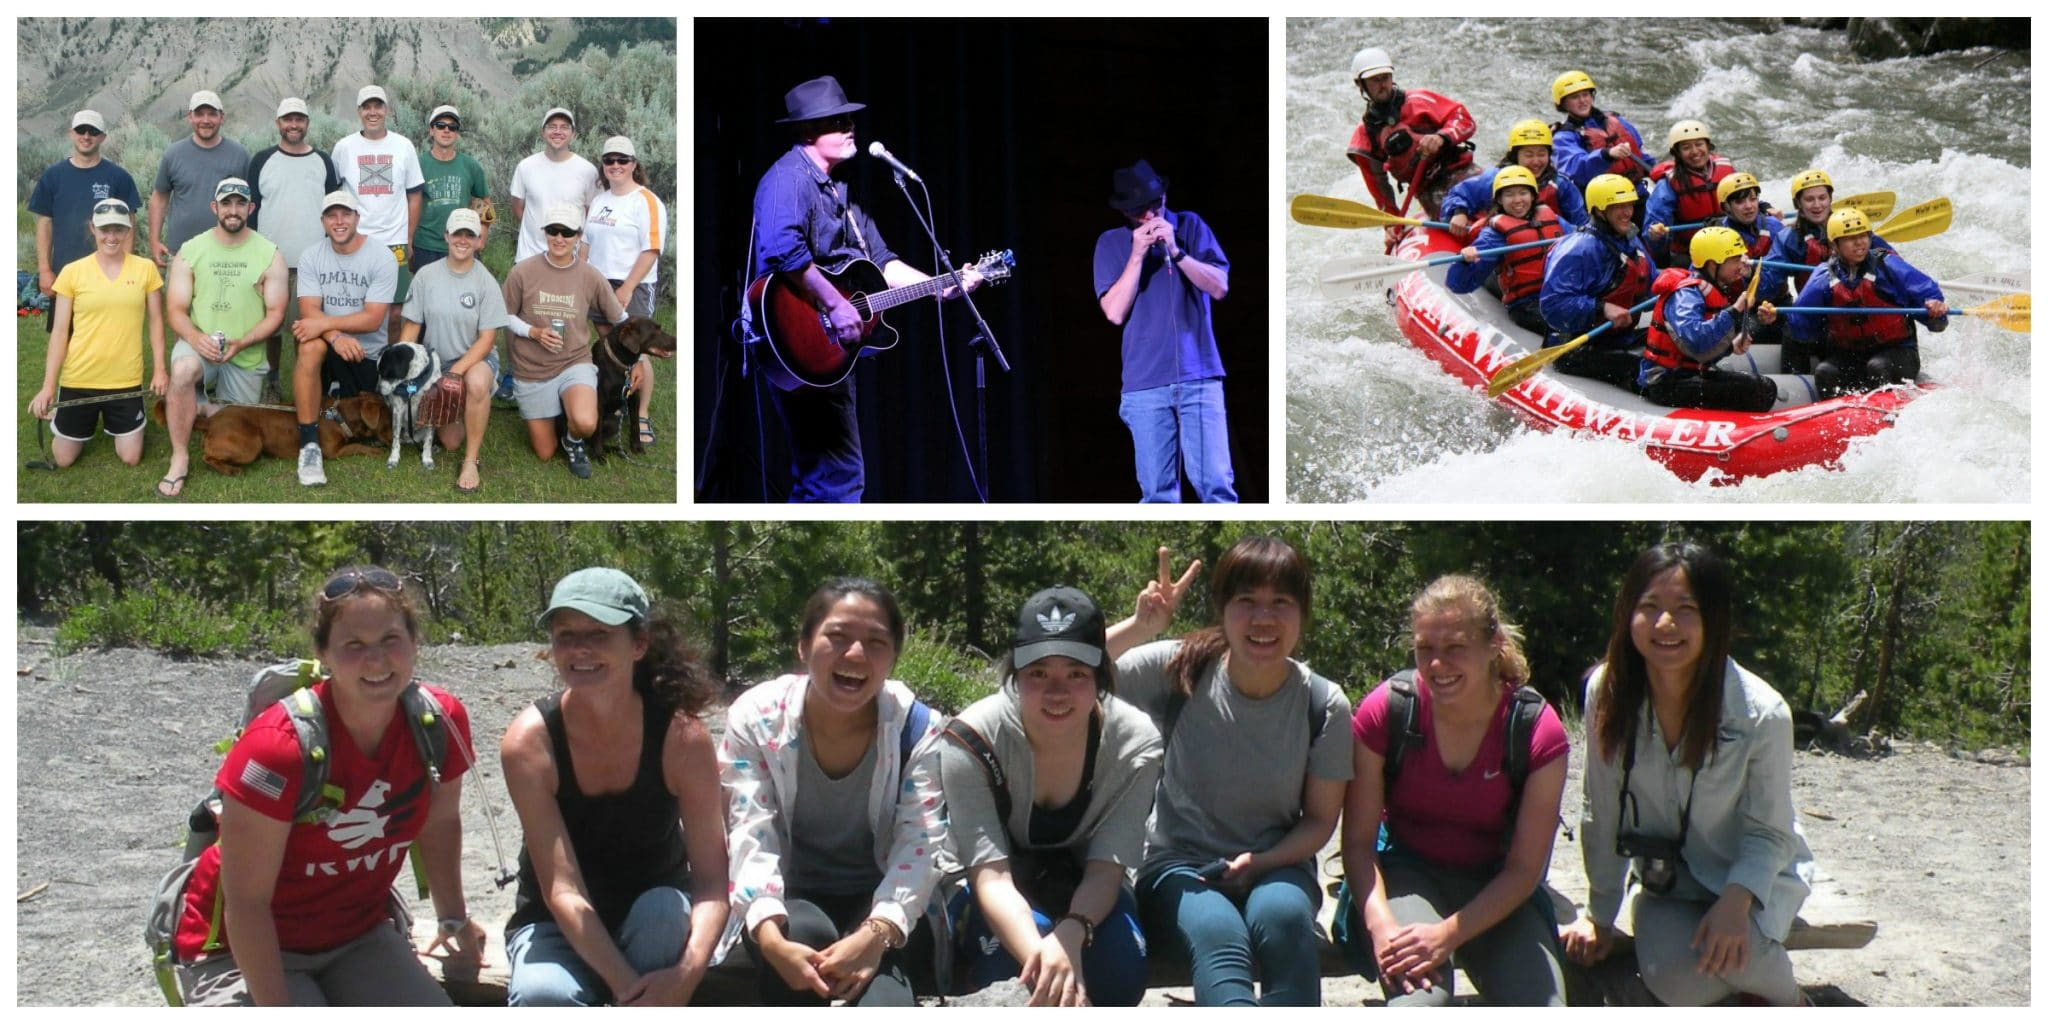 Whether it's playing on a softball team, rockin' the blues in a talent show, whitewater rafting, or joining an interpretive hike, Yellowstone employees enjoy YCERP to the fullest.